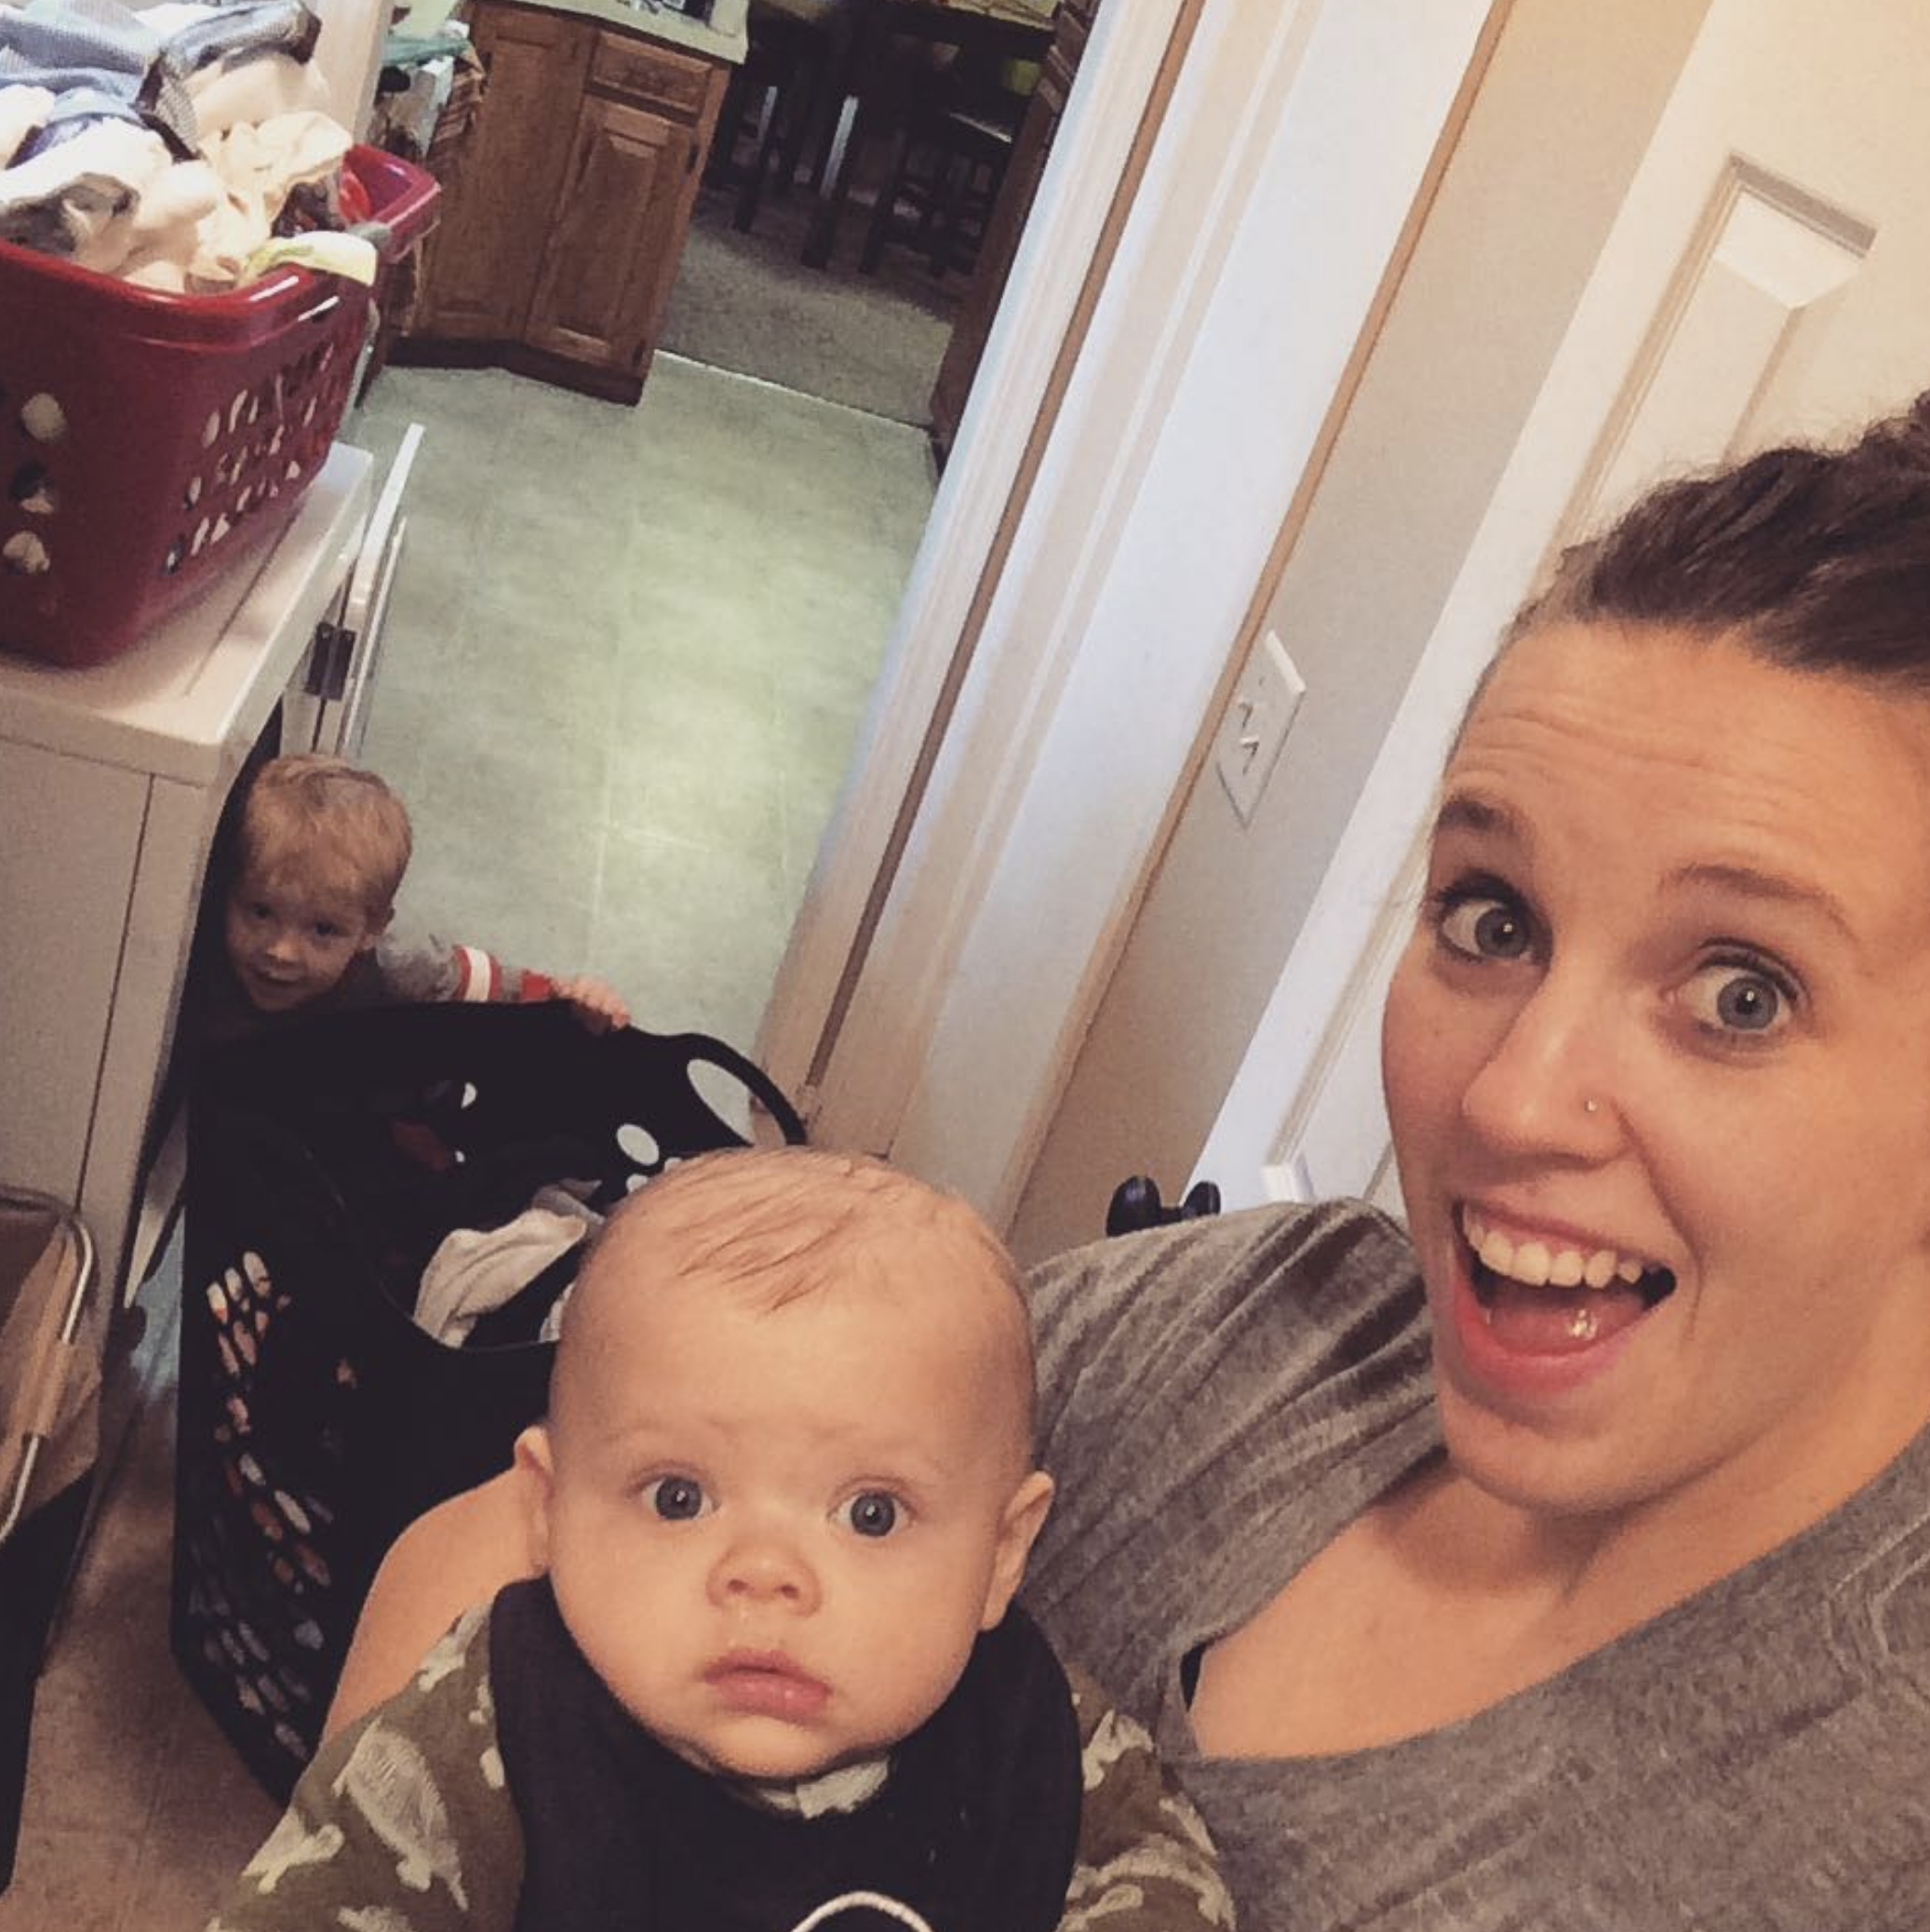 """""""When you are switching laundry from the washer to the dryer and realize you forgot to put laundry soap in the load you just 'washed'! 😋 #laundryday #boymom💙 #busymom""""   Jill Duggar Dillard, who posted this selfie with sons Israel and Samuel on Nov. 27, 2017"""